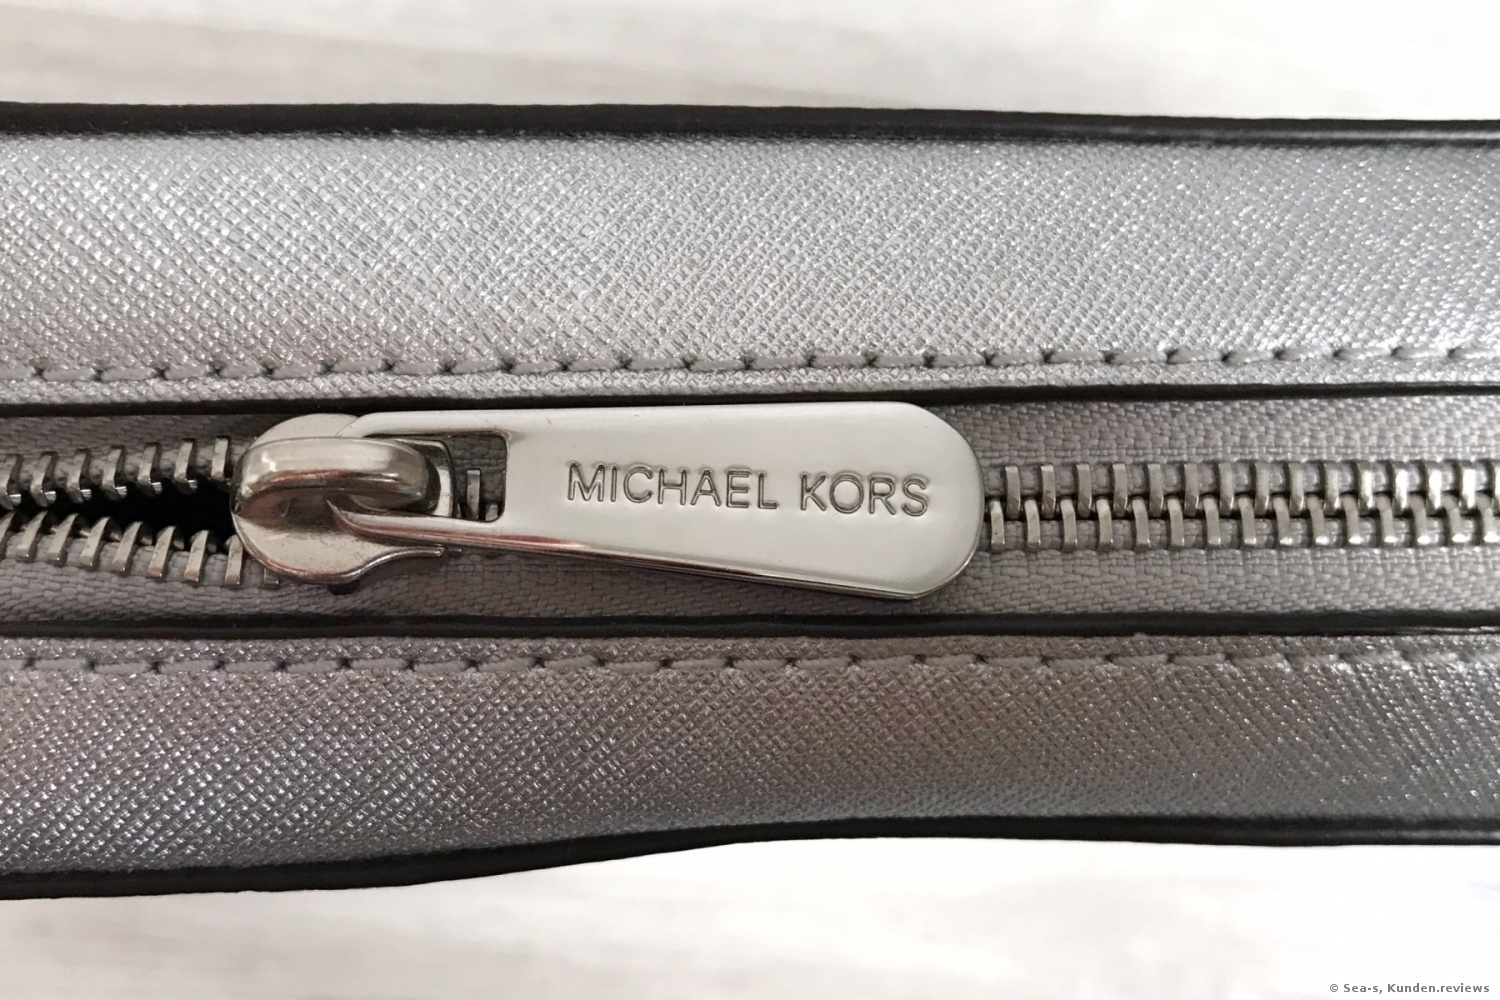 Michael Kors Jet Set Travel Large Metallic Leather Crossbody Damenhandtaschen Foto